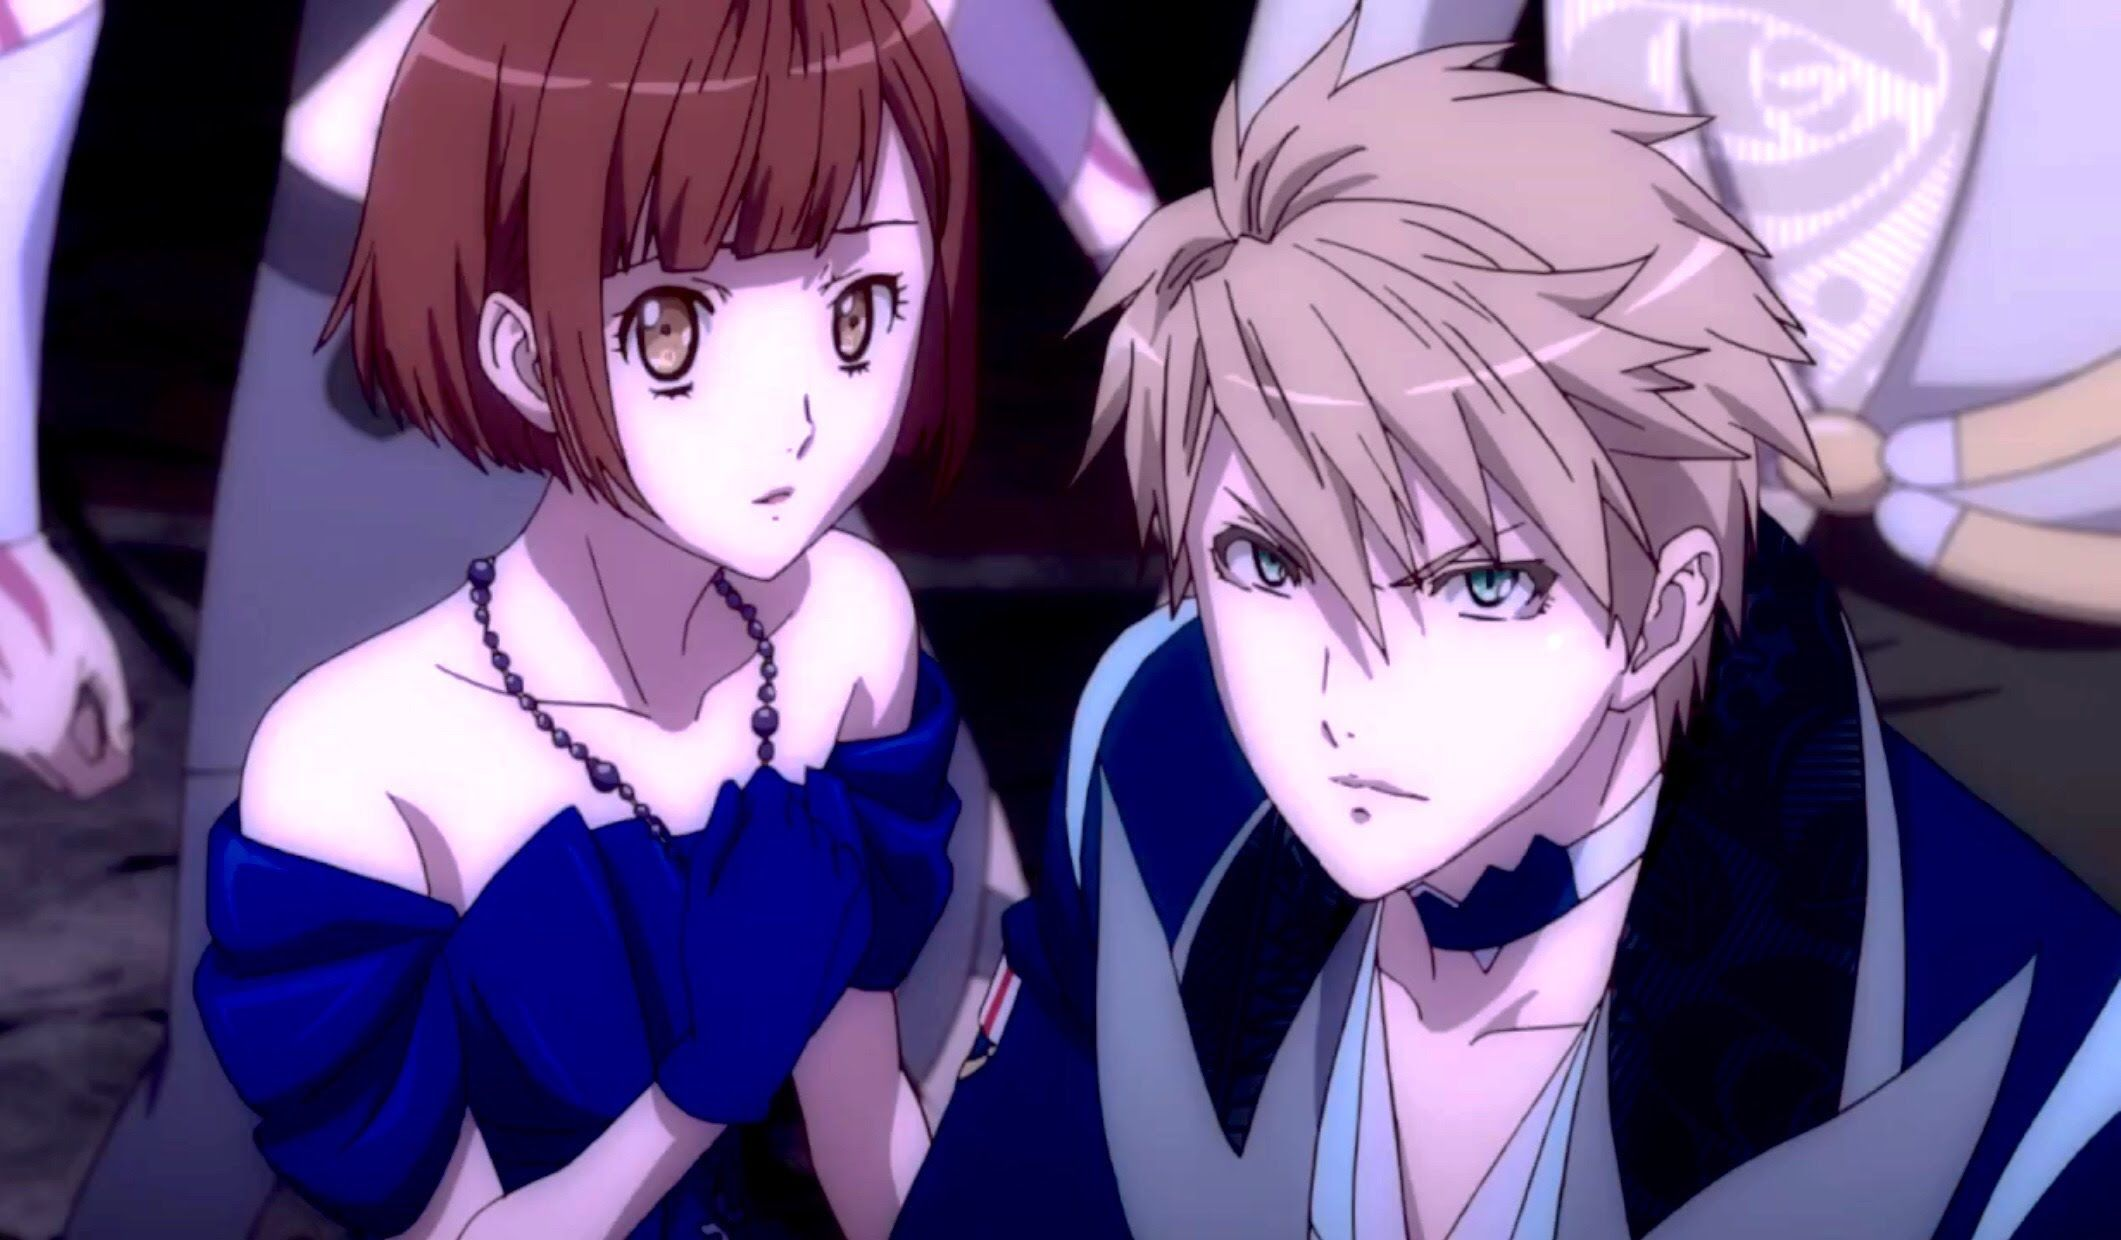 Pin by Yuna on Dance With Devils Anime wedding, Anime